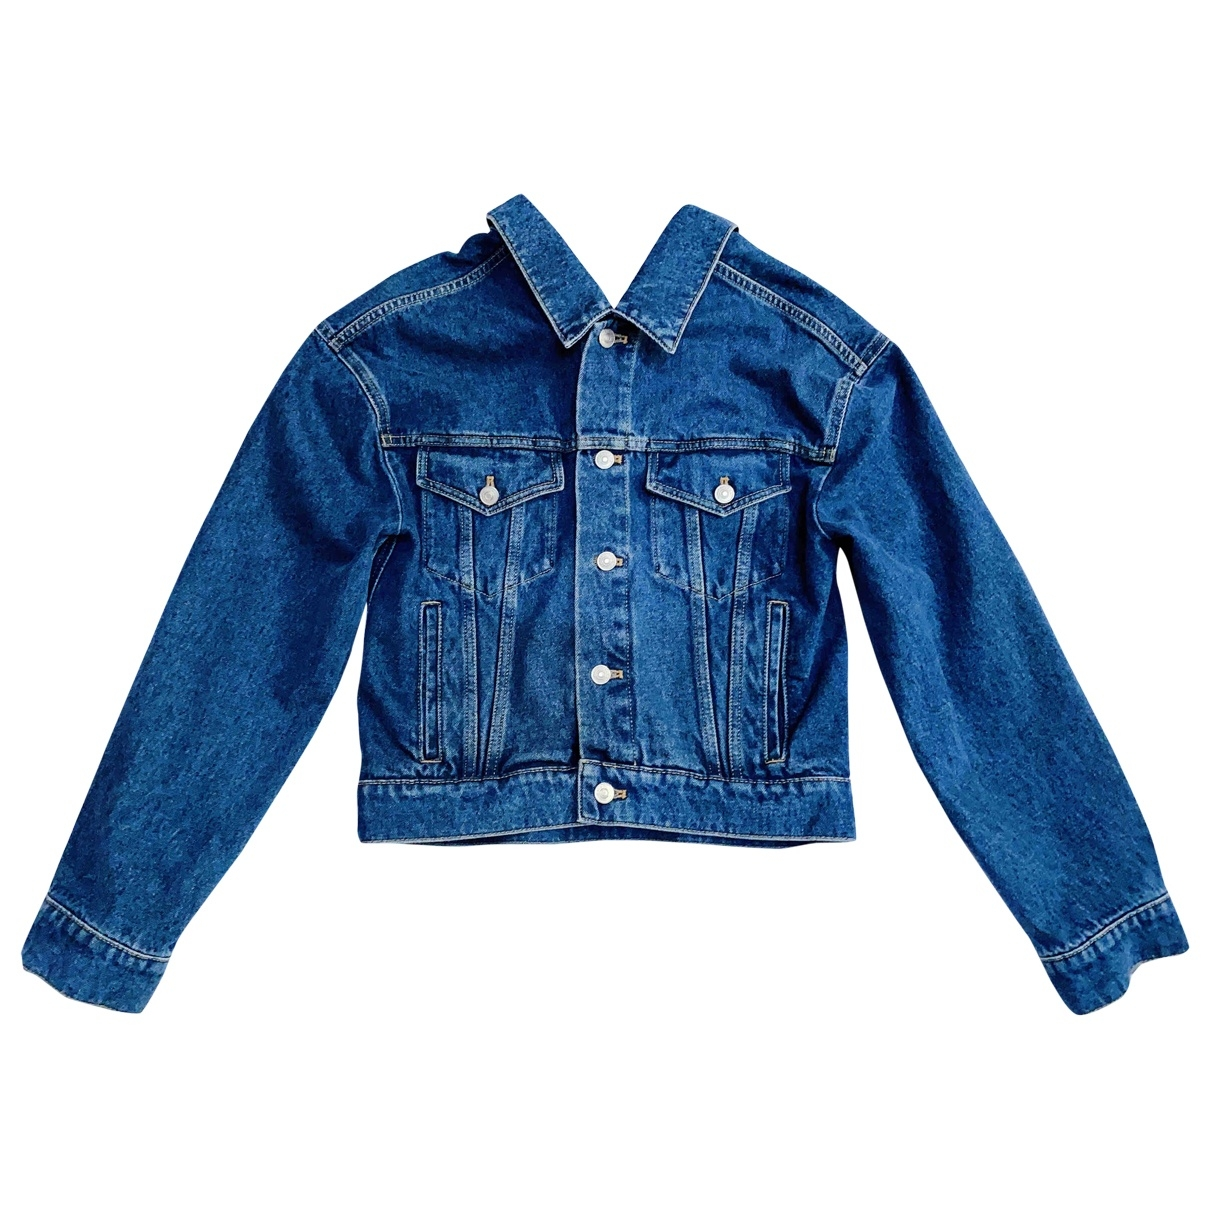 Balenciaga \N Blue Denim - Jeans jacket for Women 34 FR